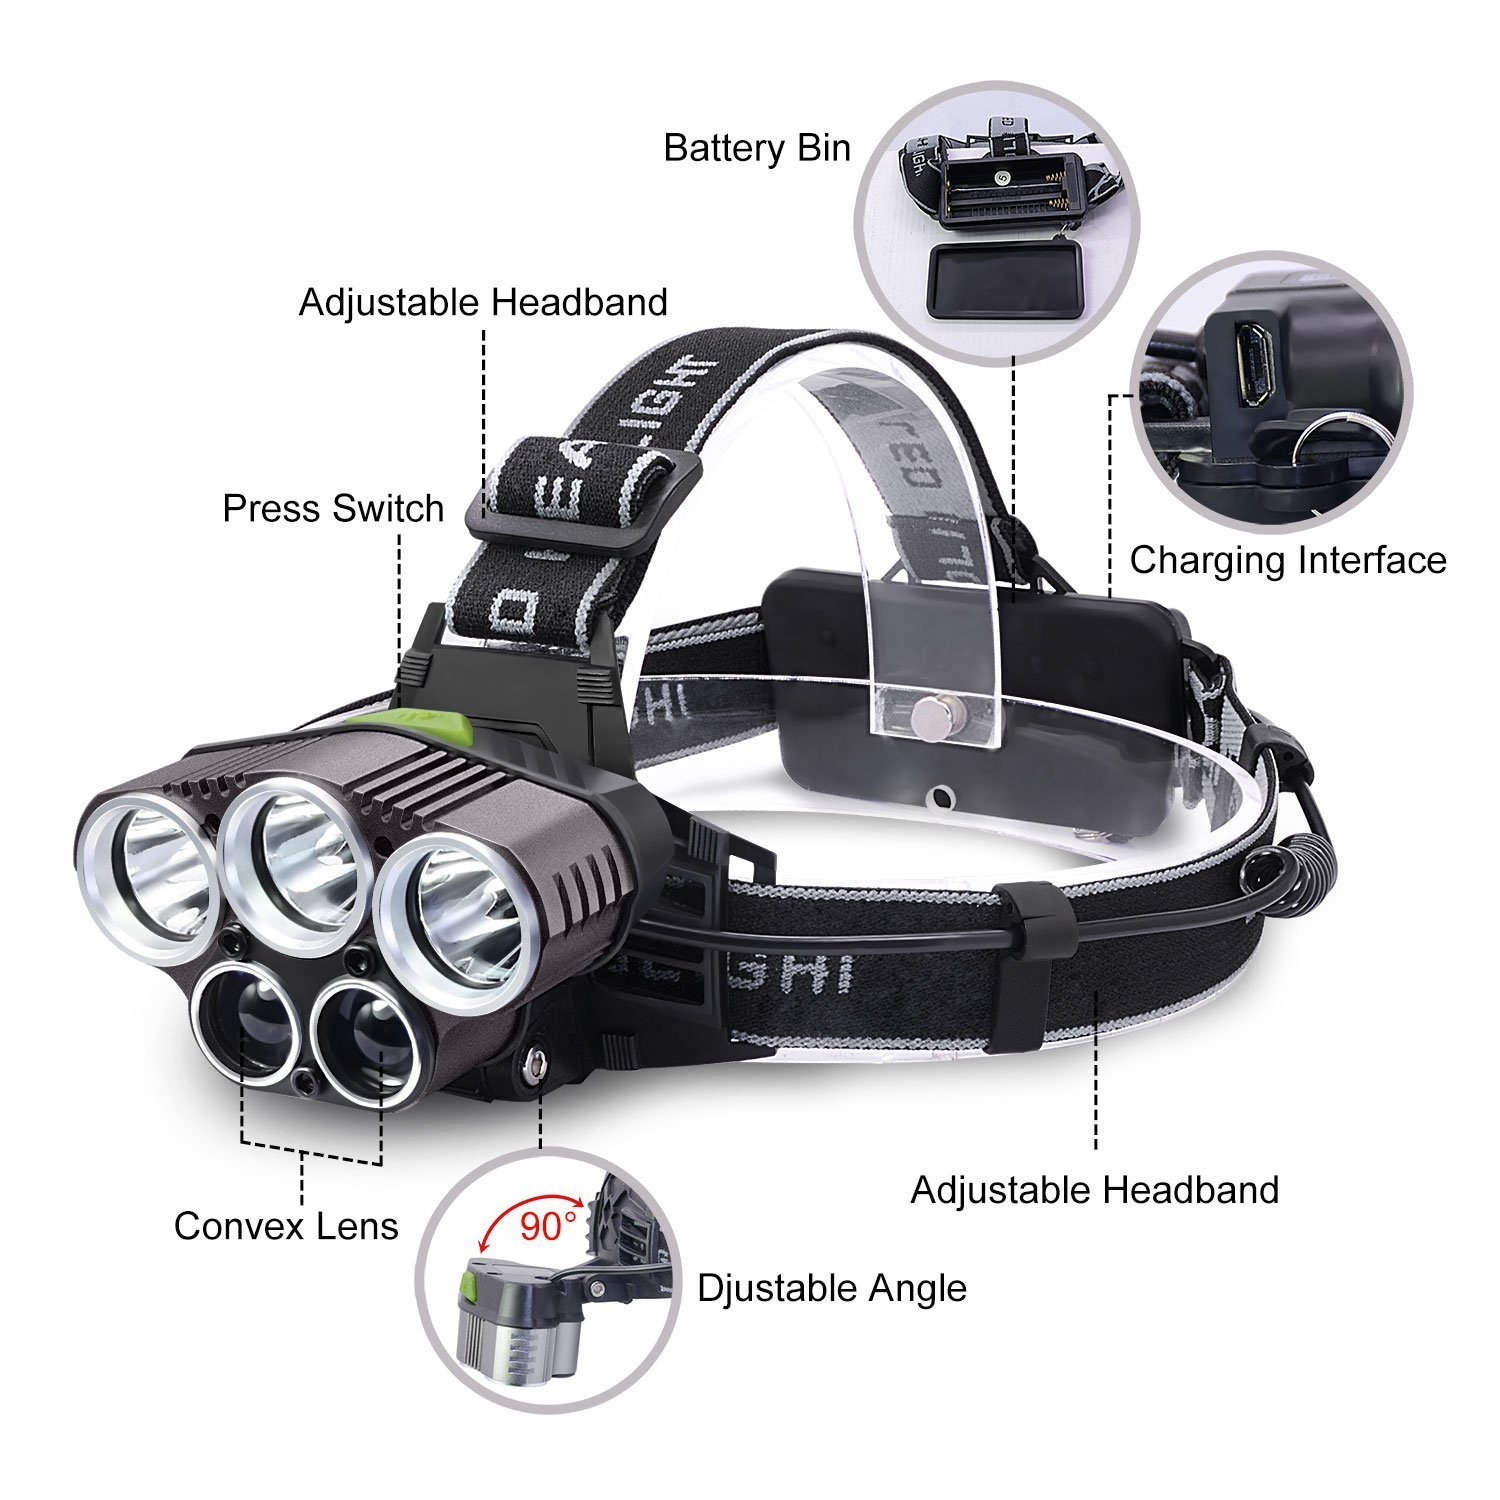 EAGY Headlamp, 5000 Lumen CREE LED Work Headlight,18650 Rechargeable Waterproof Flashlight with 6 Modes Zoomable Work Light,Best Head Lights for Camping Running Hiking by EAGY (Image #5)